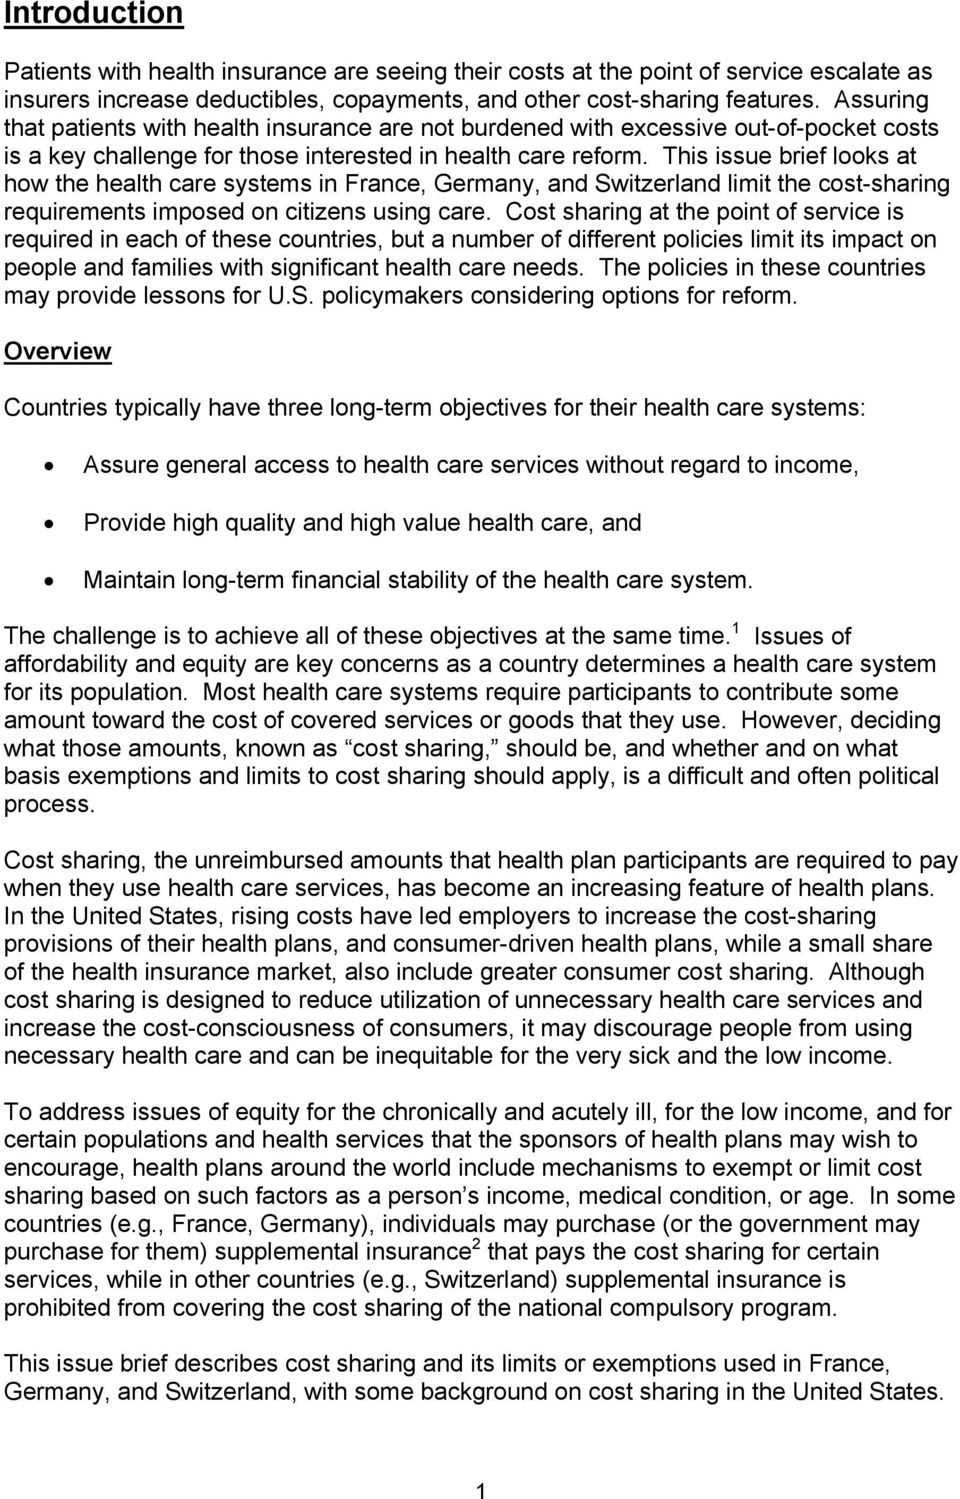 This issue brief looks at how the health care systems in France, Germany, and Switzerland limit the cost-sharing requirements imposed on citizens using care.